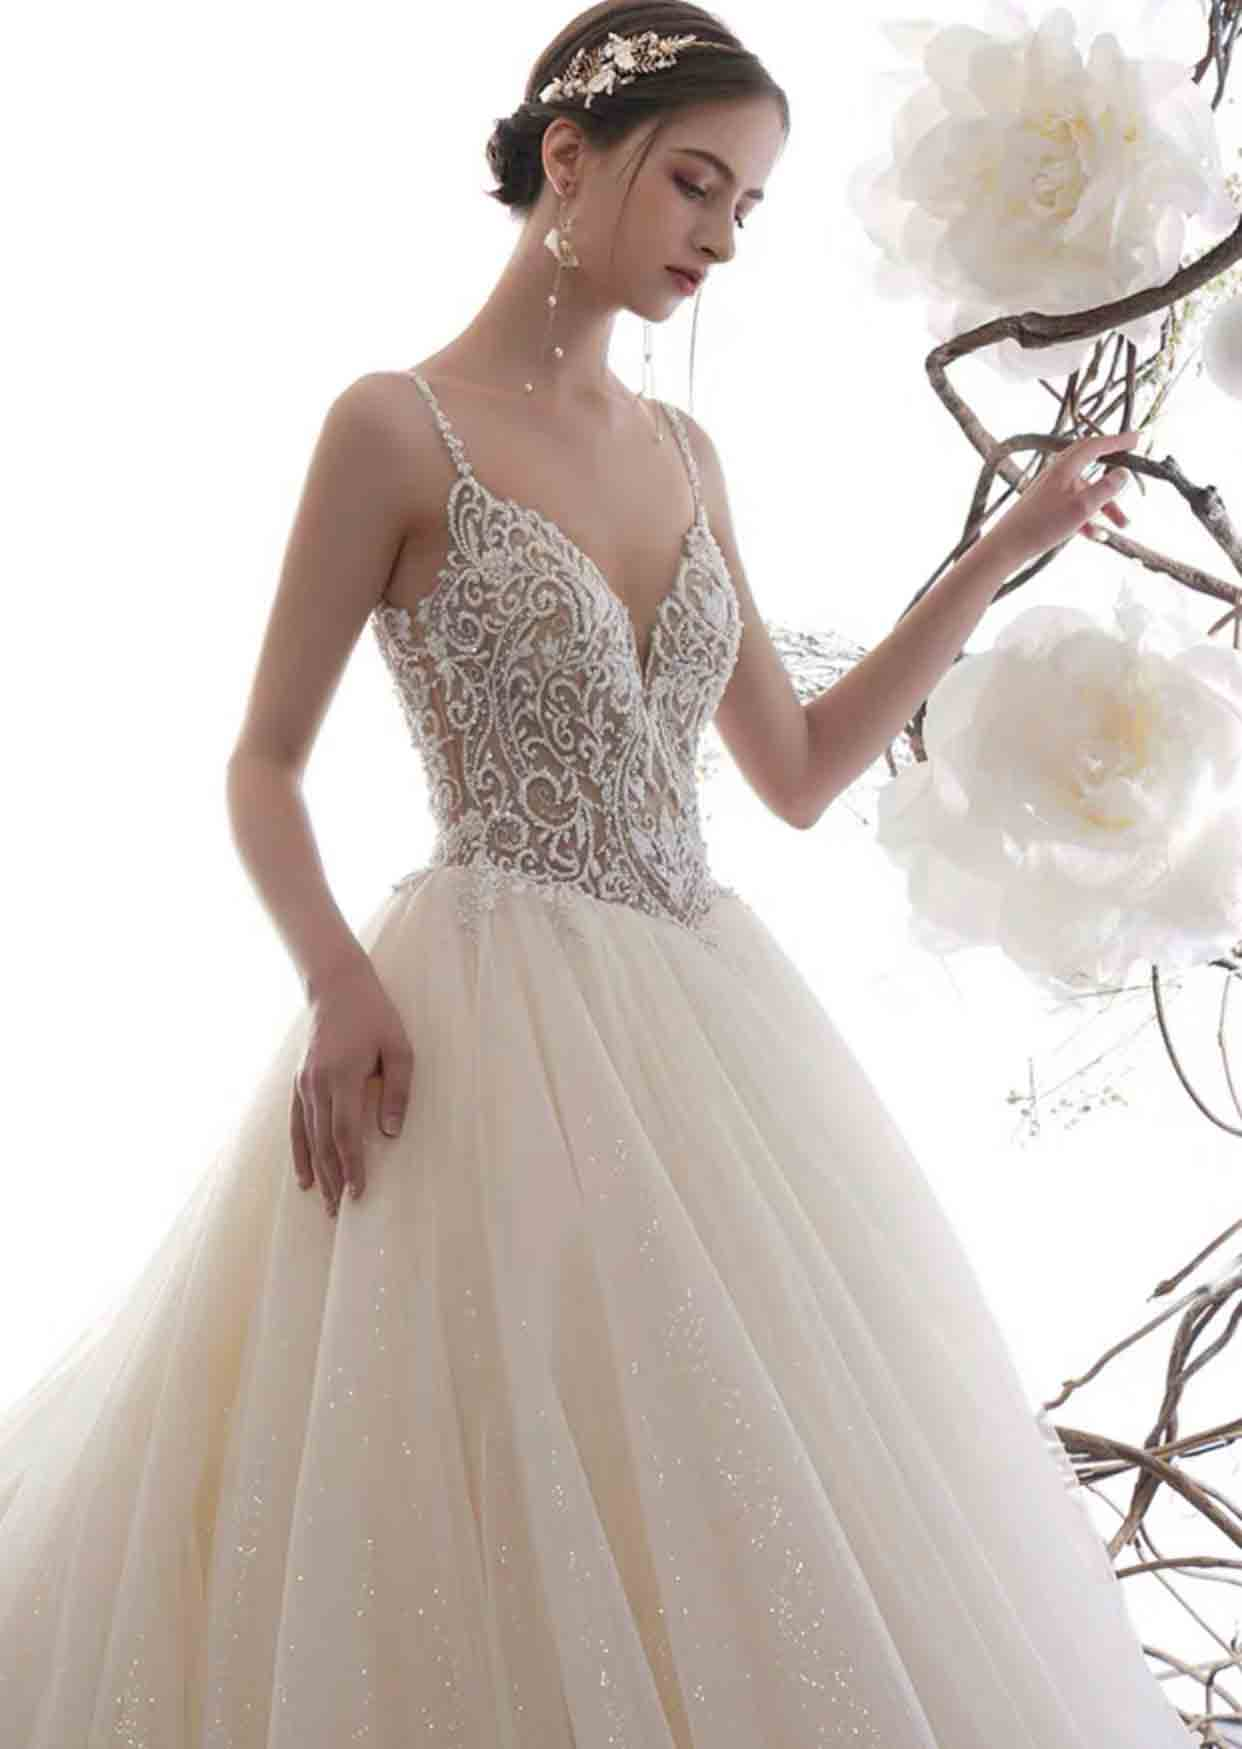 [RENT OR BUY] Custom Made Monarch Sleeveless Full Beaded Deep Back Wedding Dress